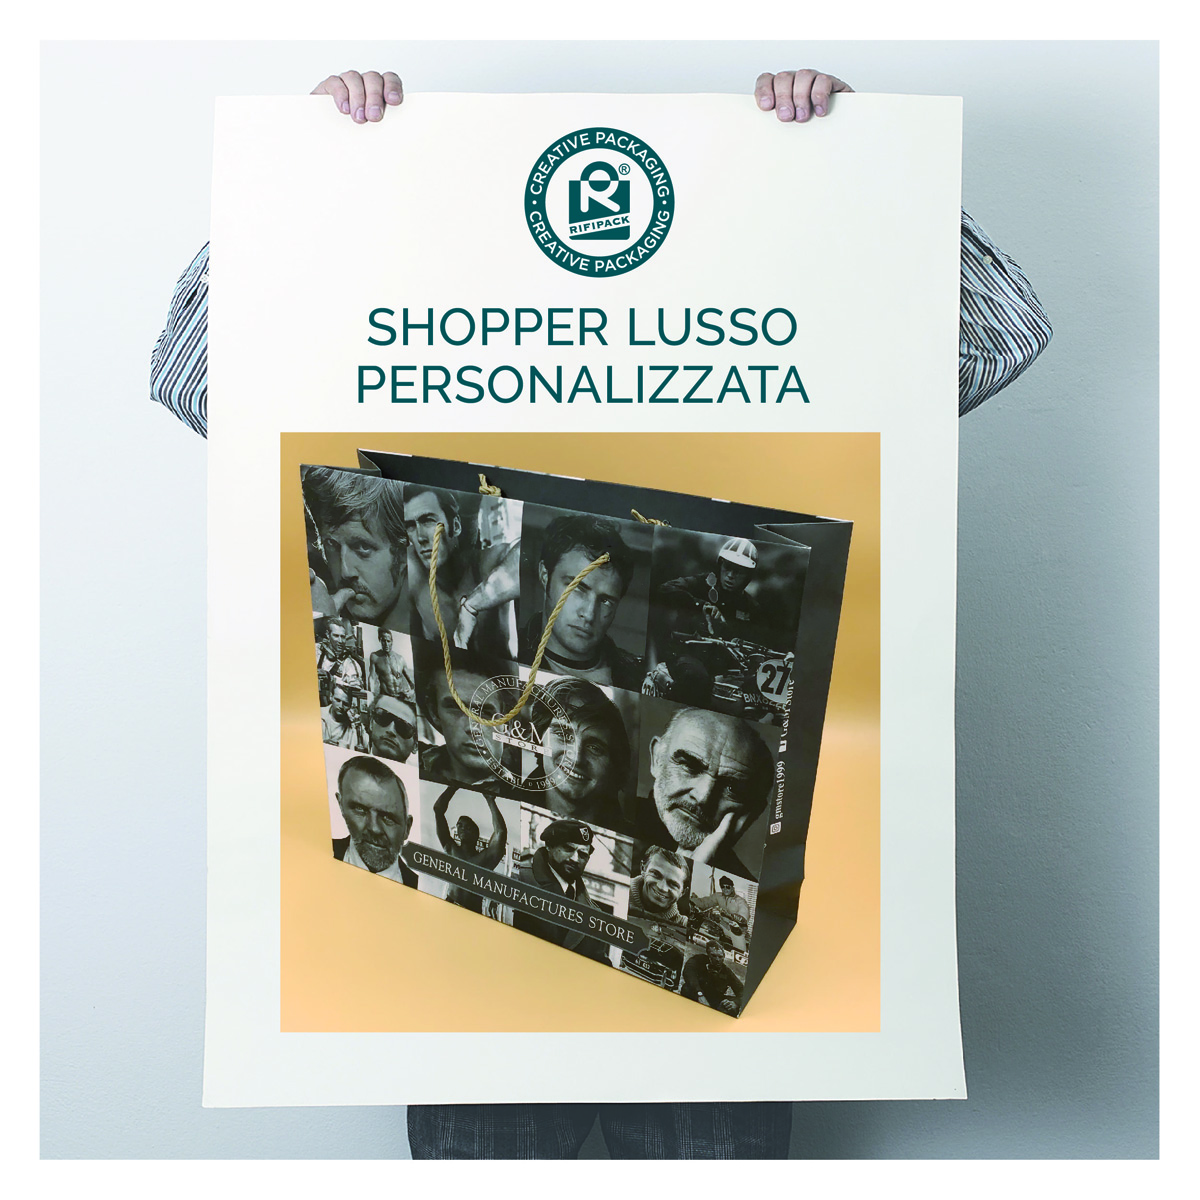 rifipack-shopper-lusso-personalizzata-made-in-italy-creative-packaging-1